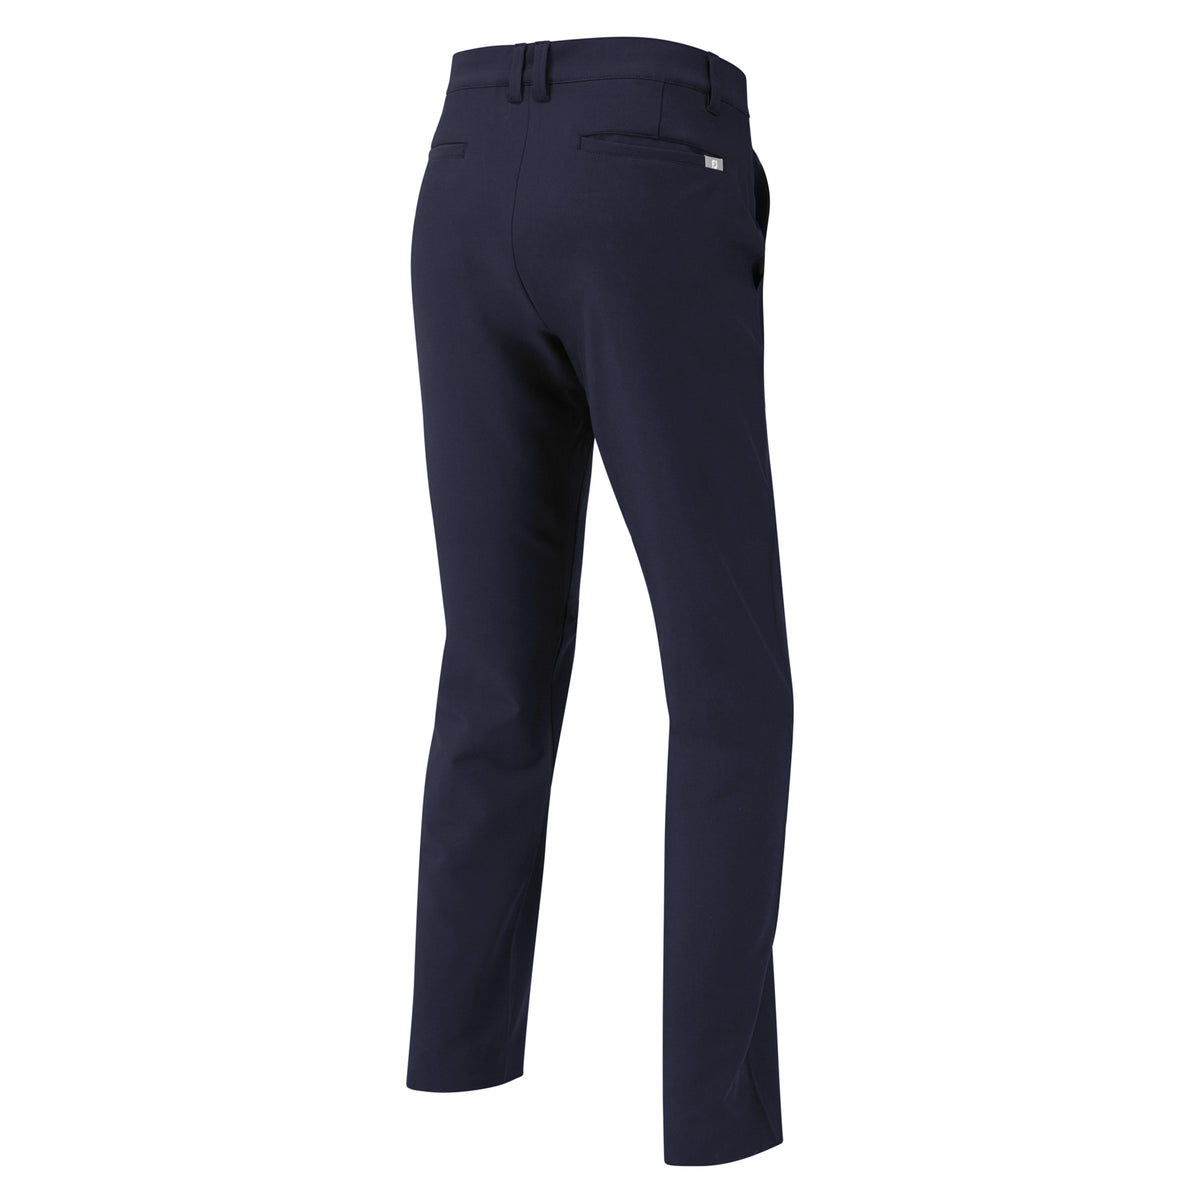 Buxur FJ Performance Tapered Fit Trouser